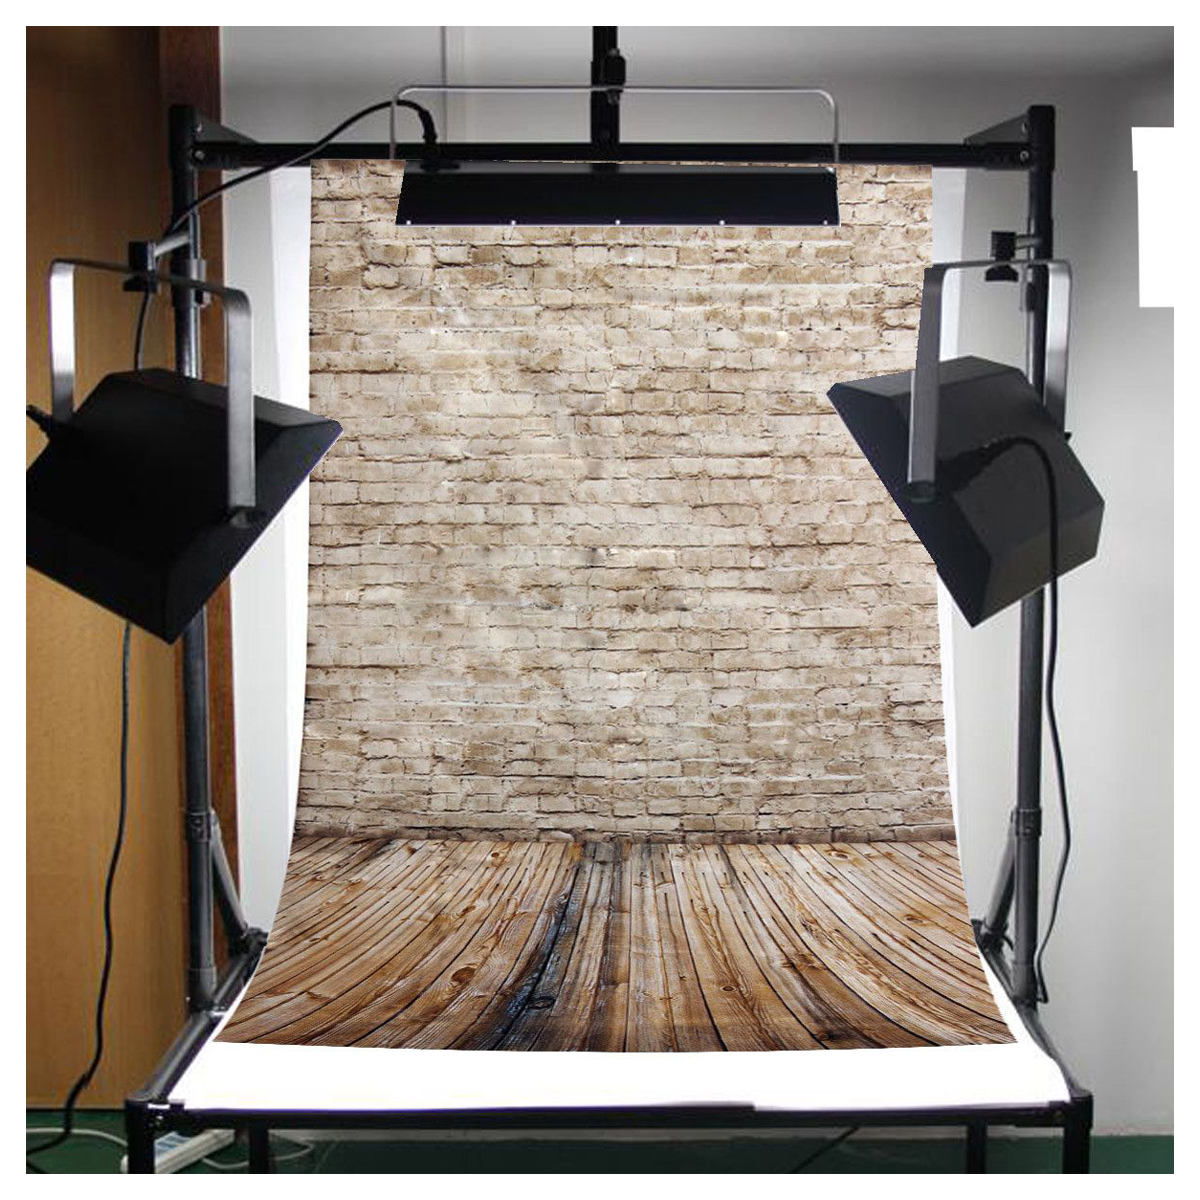 ETC-3x5FT Brick Wall Photography Backdrop Photo Wooden Floor Studio Background Props Light Grey shengyongbao 300cm 200cm vinyl custom photography backdrops brick wall theme photo studio props photography background brw 12